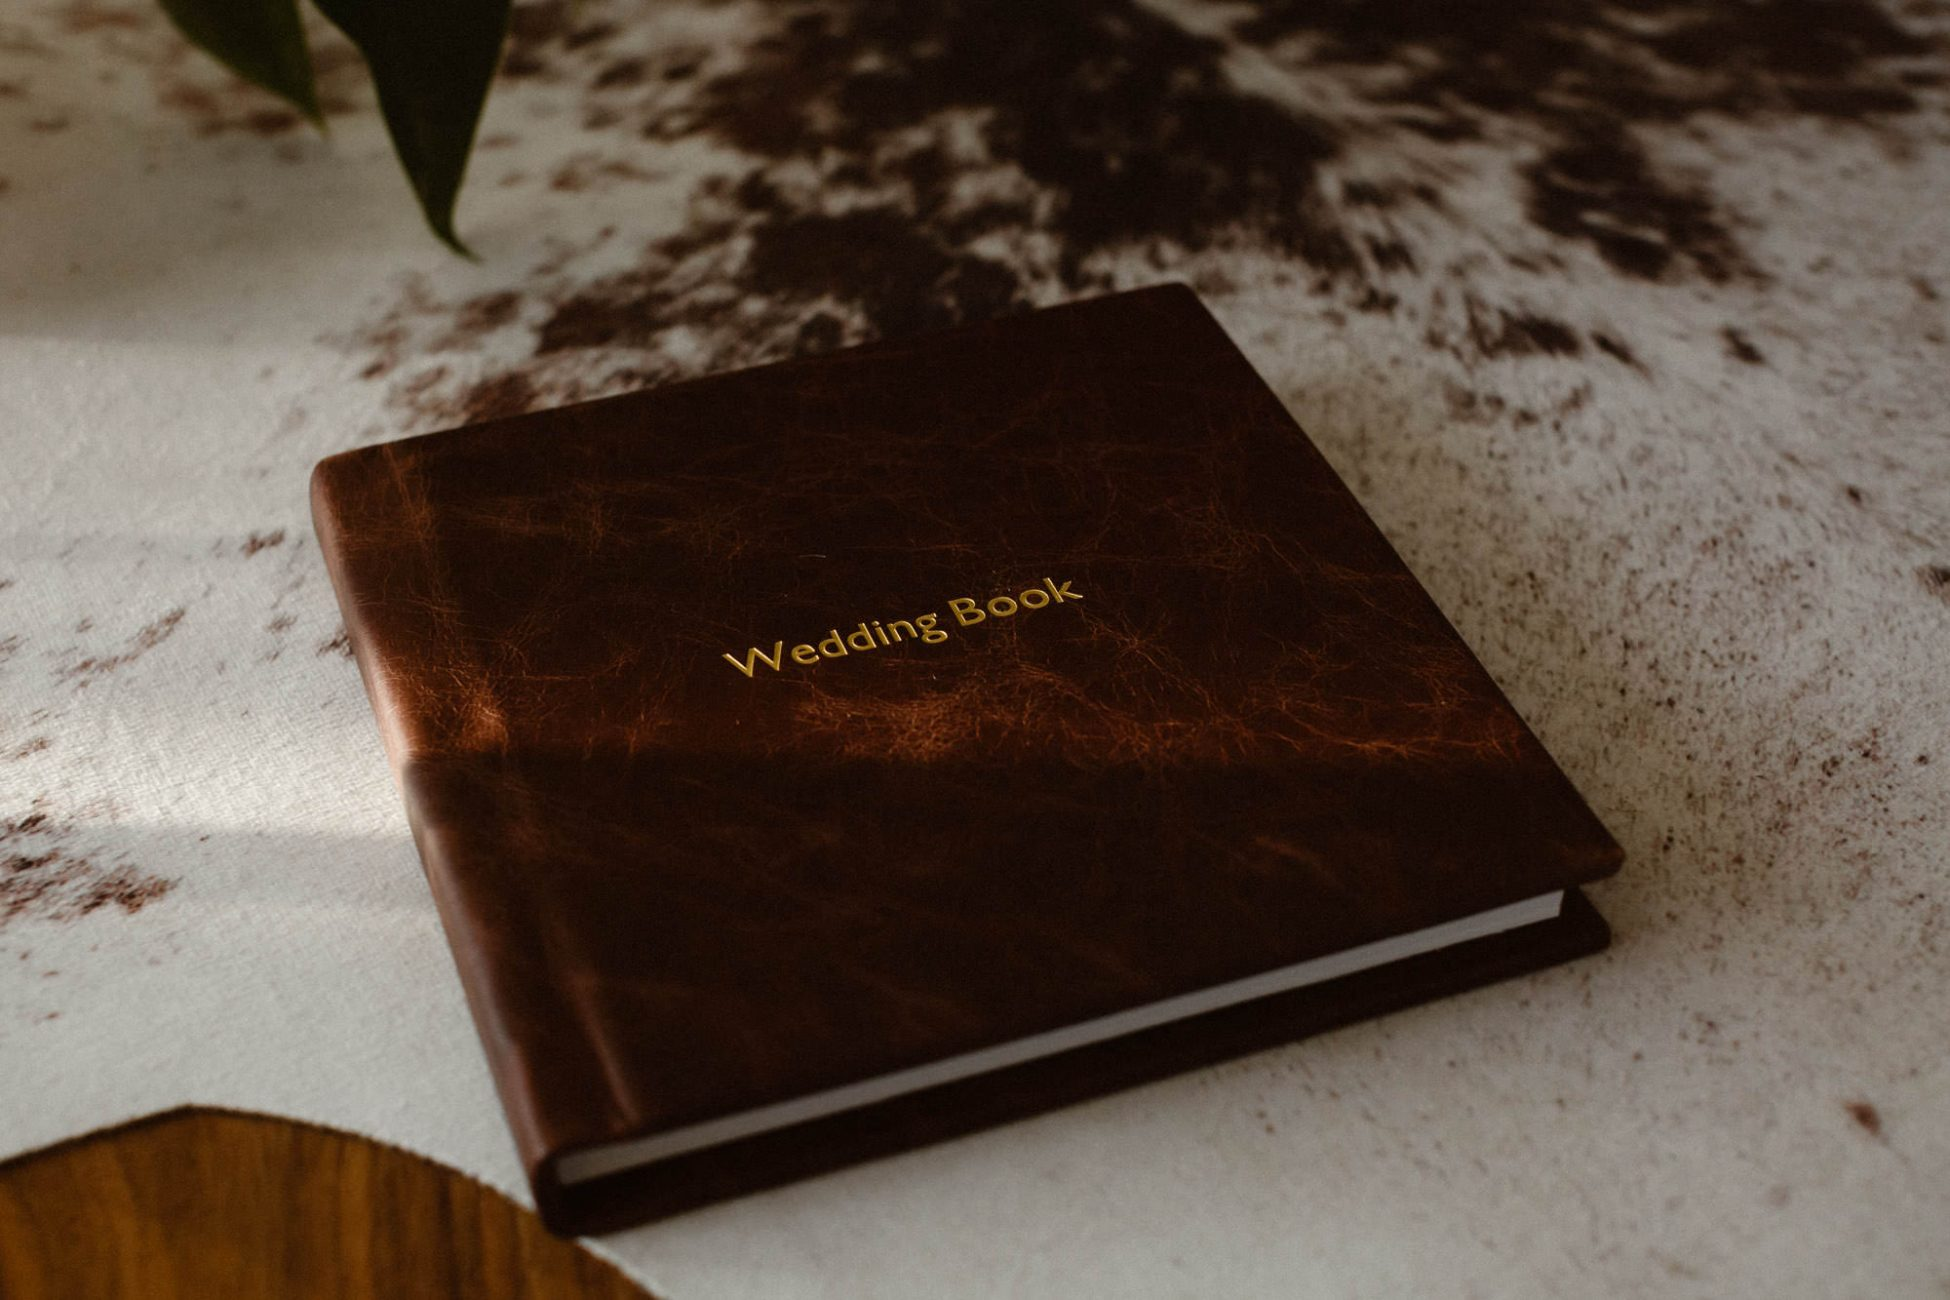 Bespoke leather and linen wedding albums